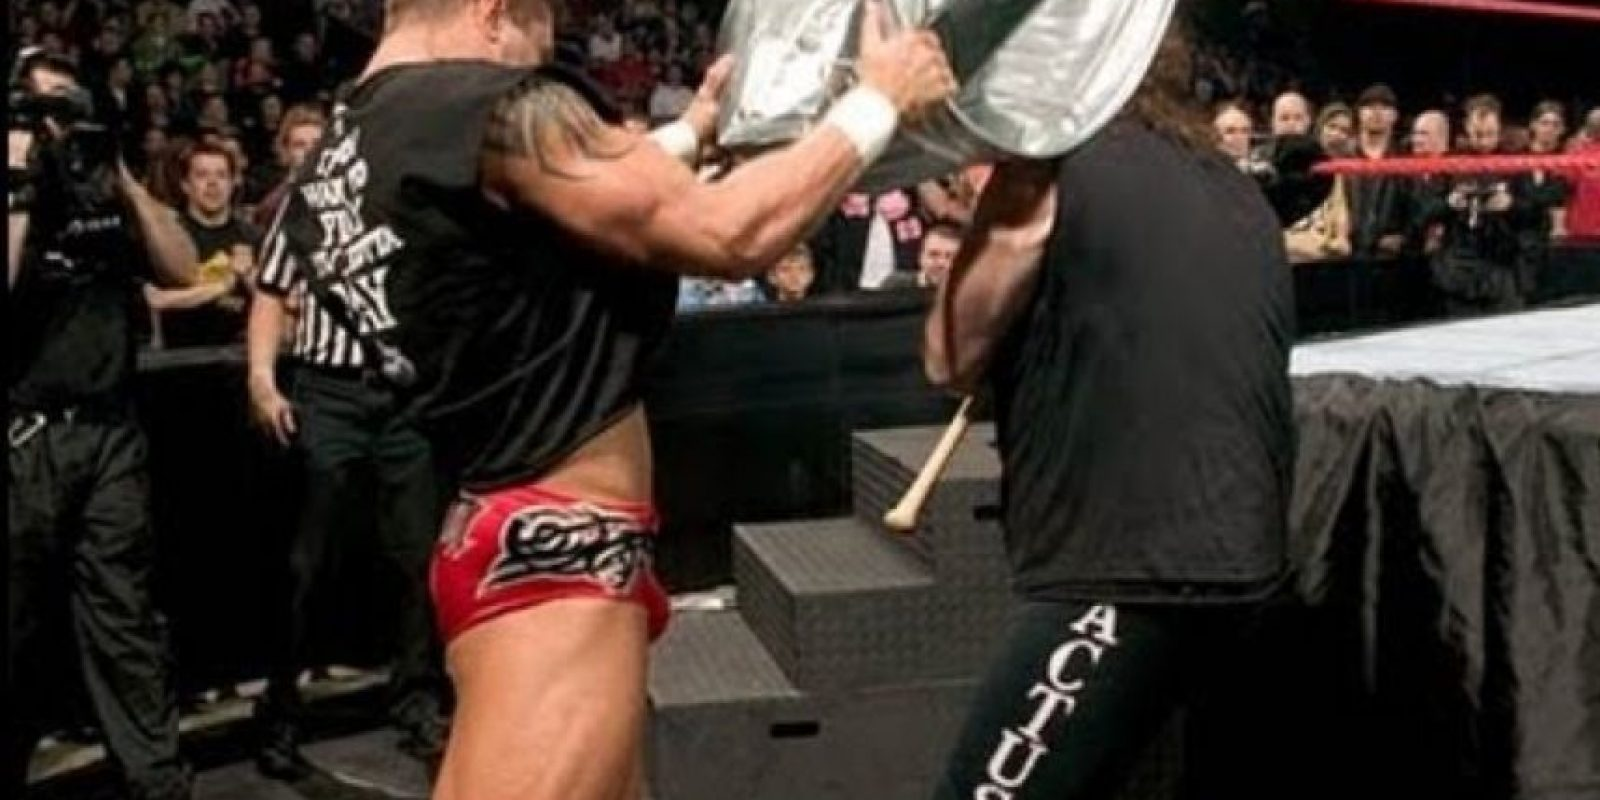 Randy Orton vs Mick Foley, en Backlash 2004 Foto: WWE